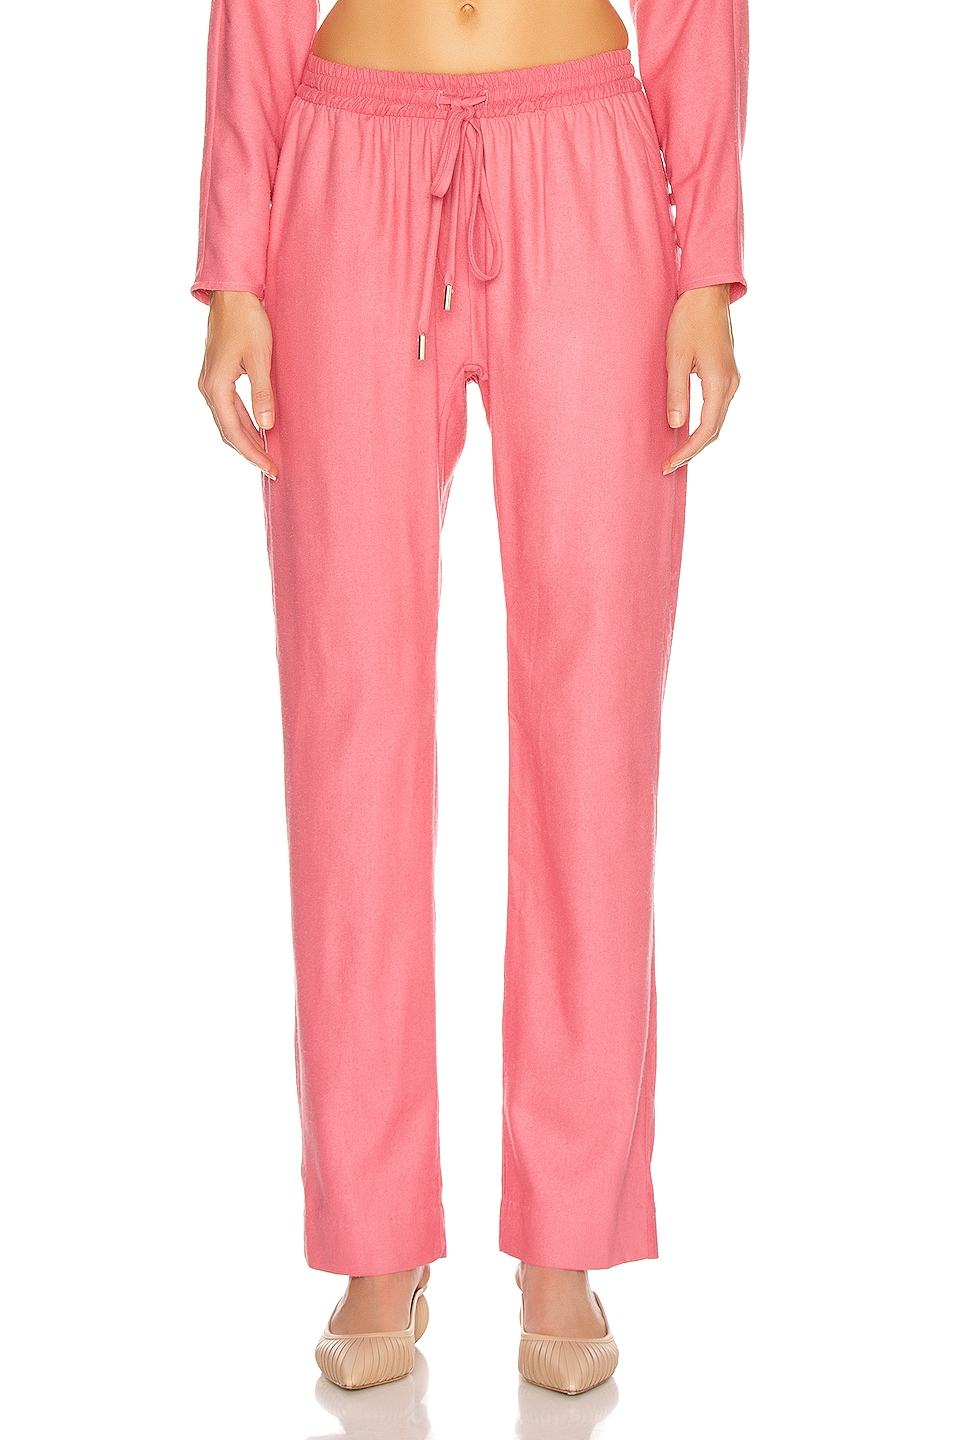 Image 1 of Cult Gaia Mah Pant in Bubblegum